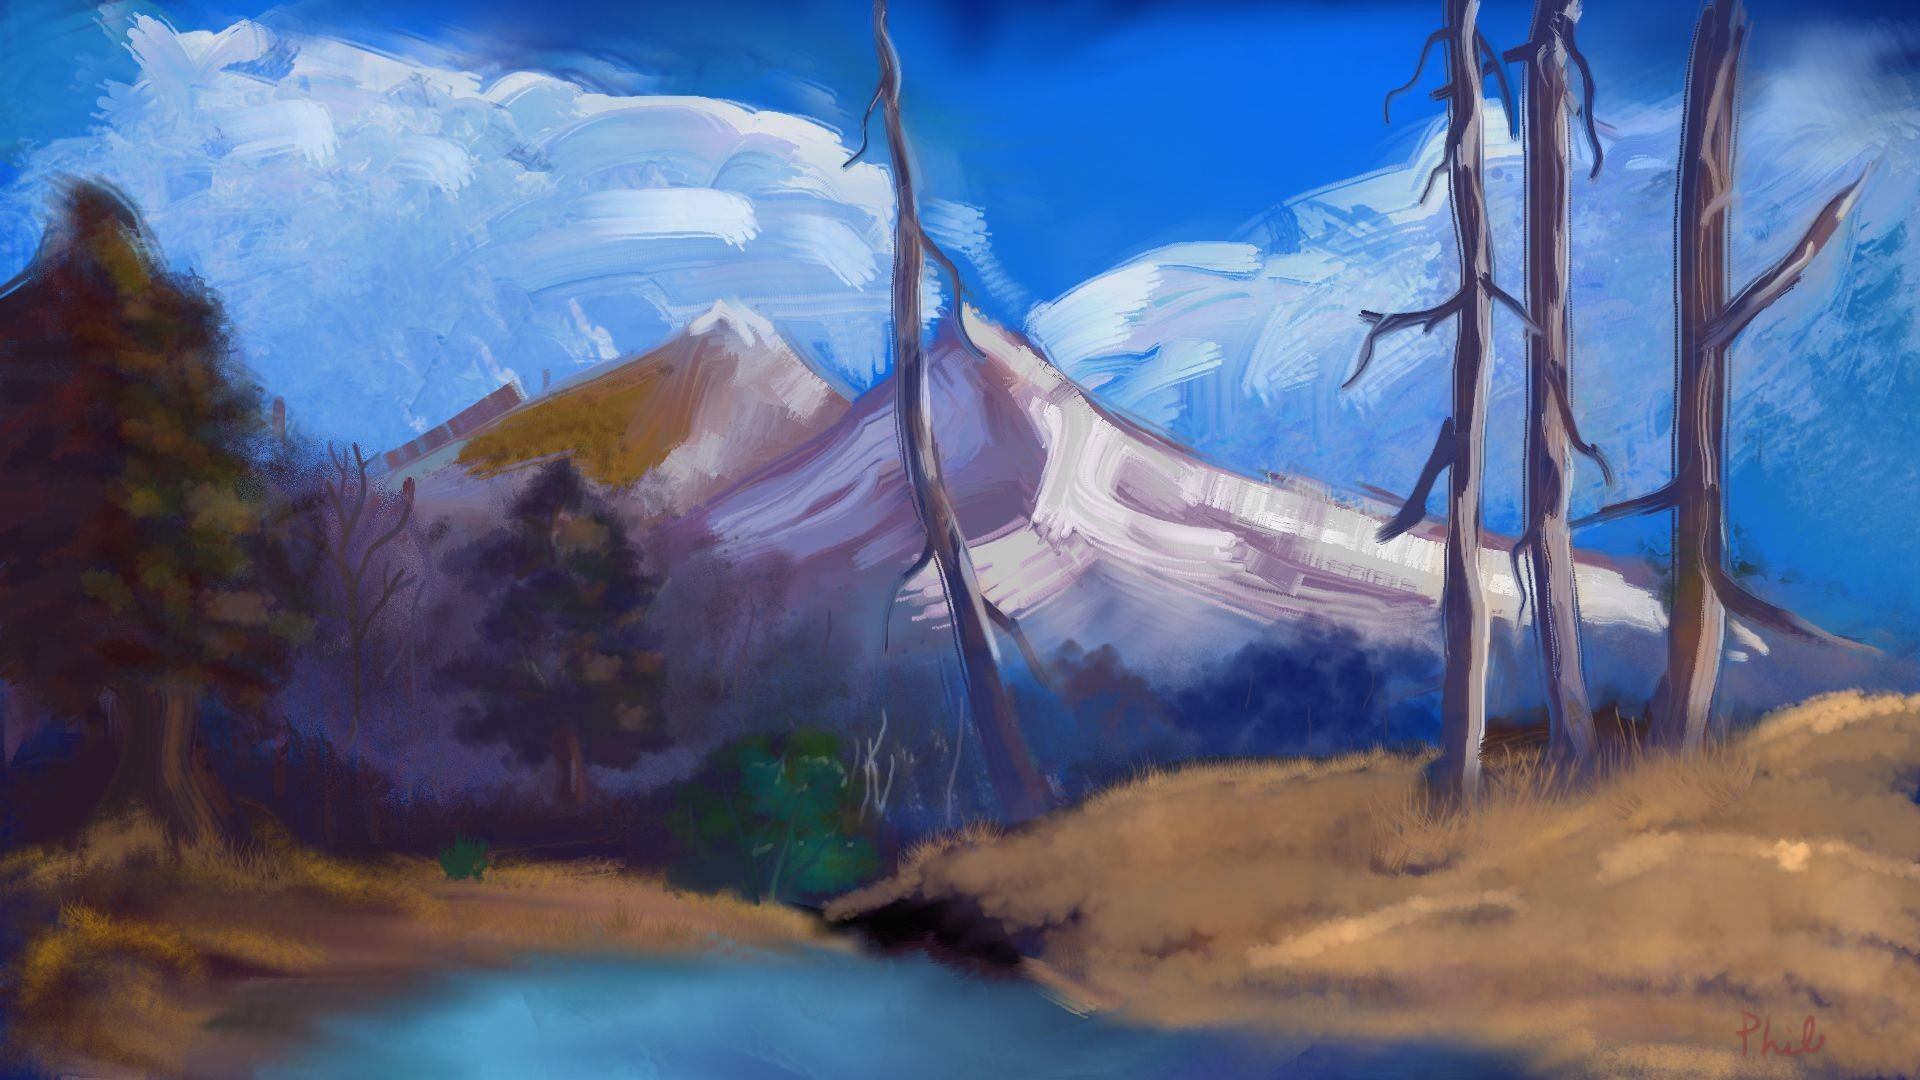 Res: 1920x1080, Painting with Bob Ross Finished